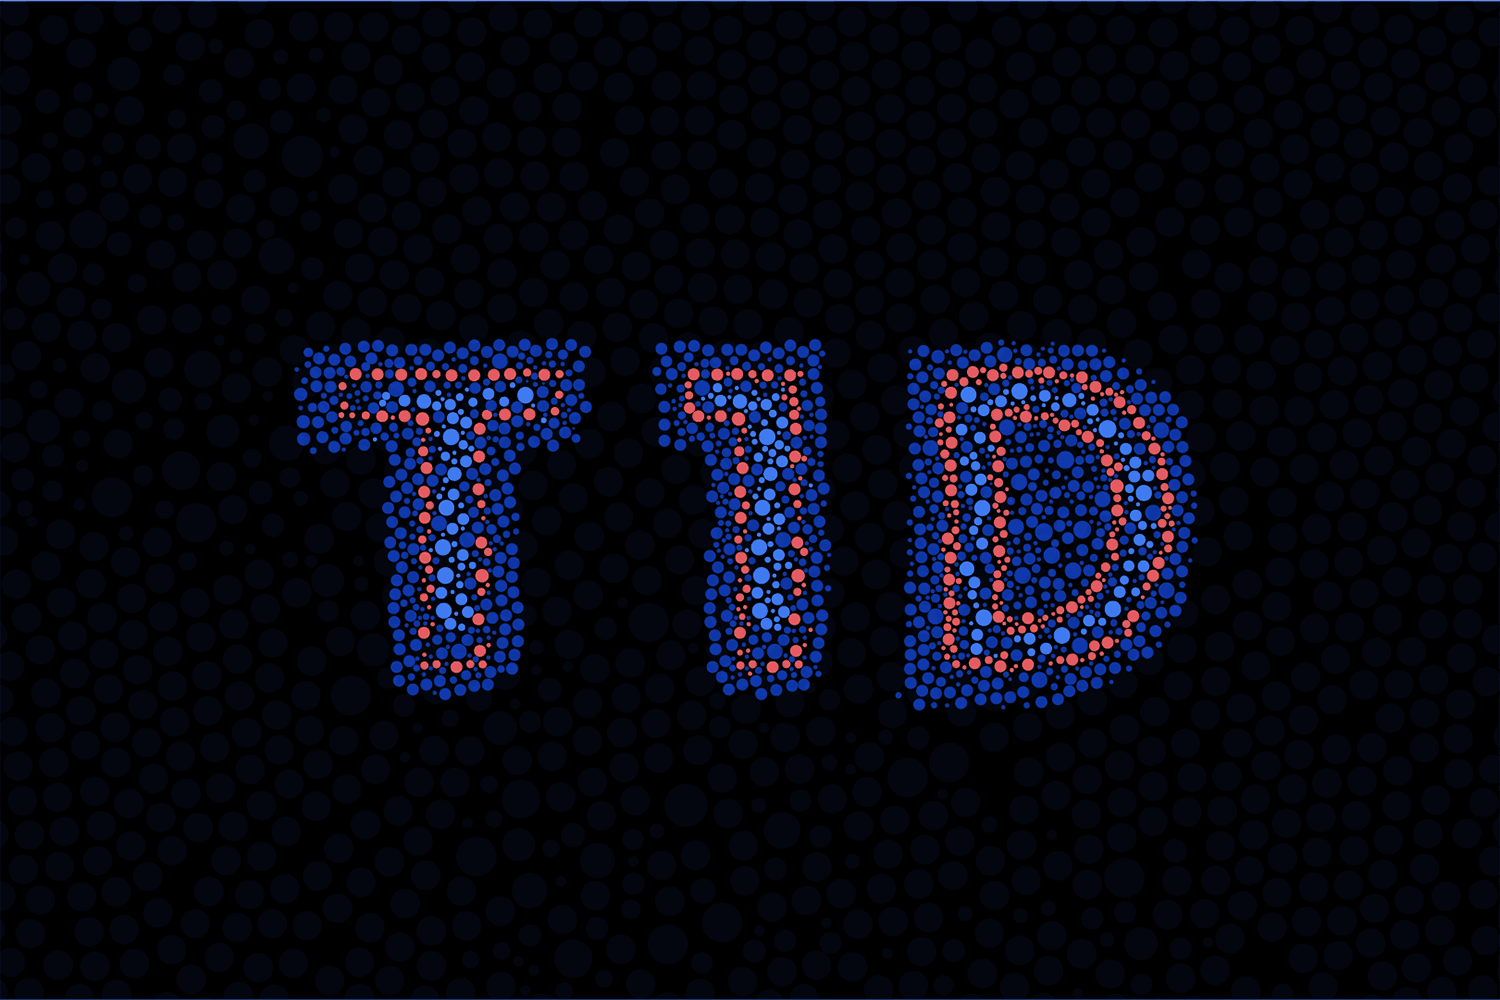 IBM and JDRF provided insights into development of biomarkers associated with risk of T1D onset in young children.